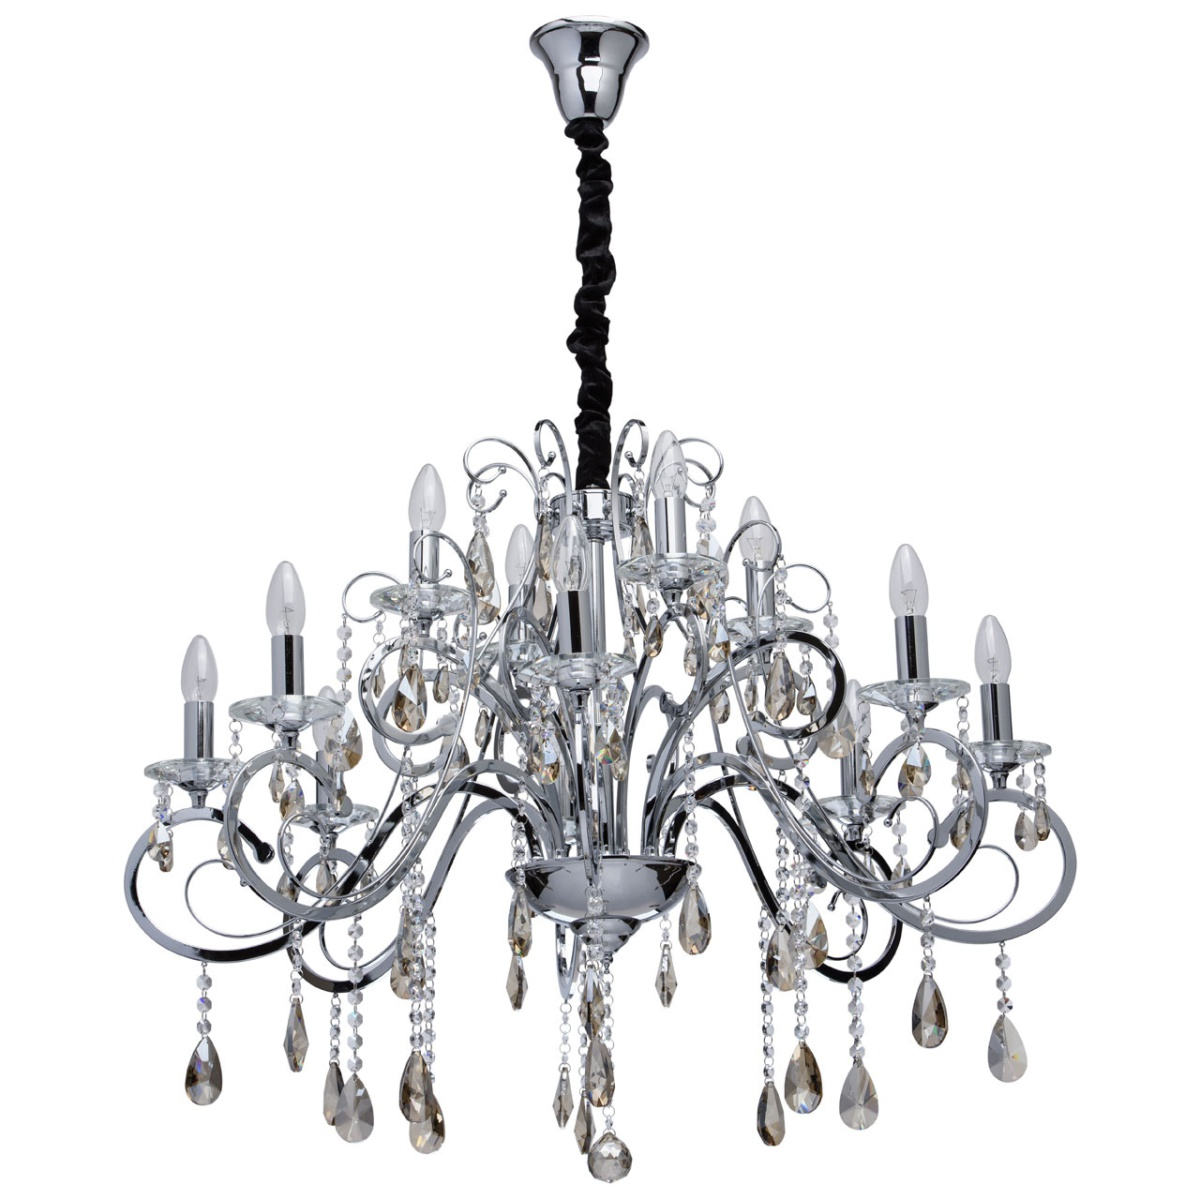 Candelabru Cristal Imagine